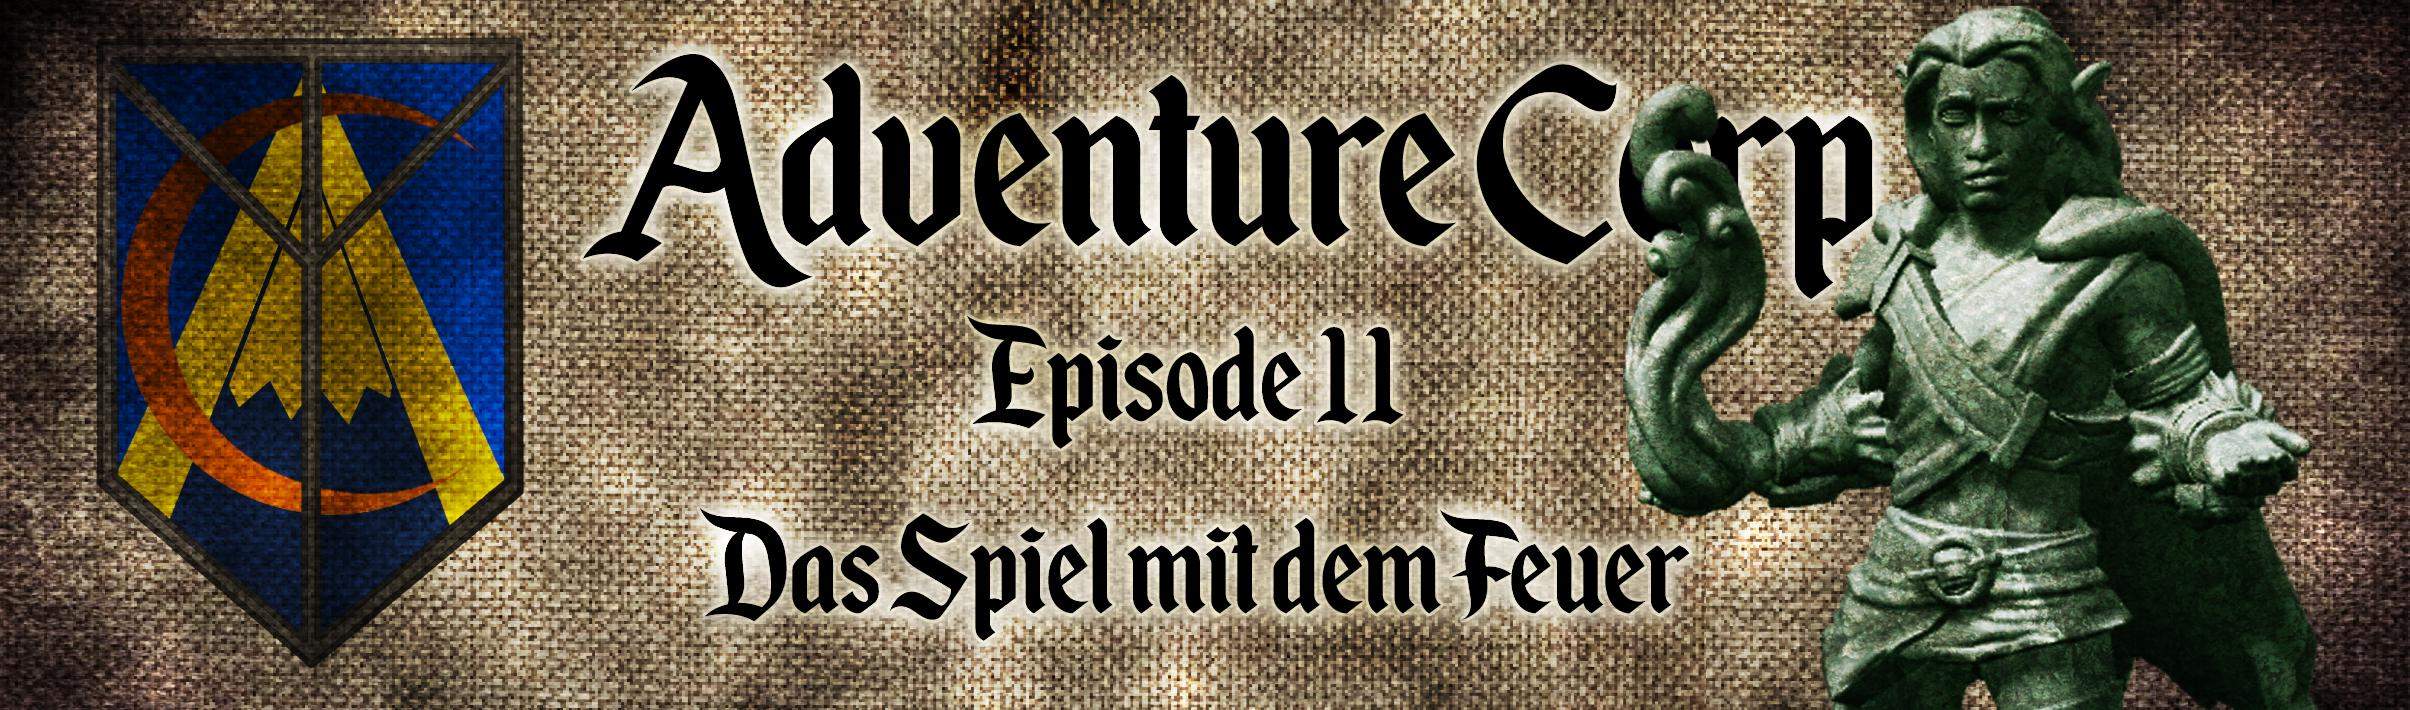 Adventure Corp - Banner Episode 11